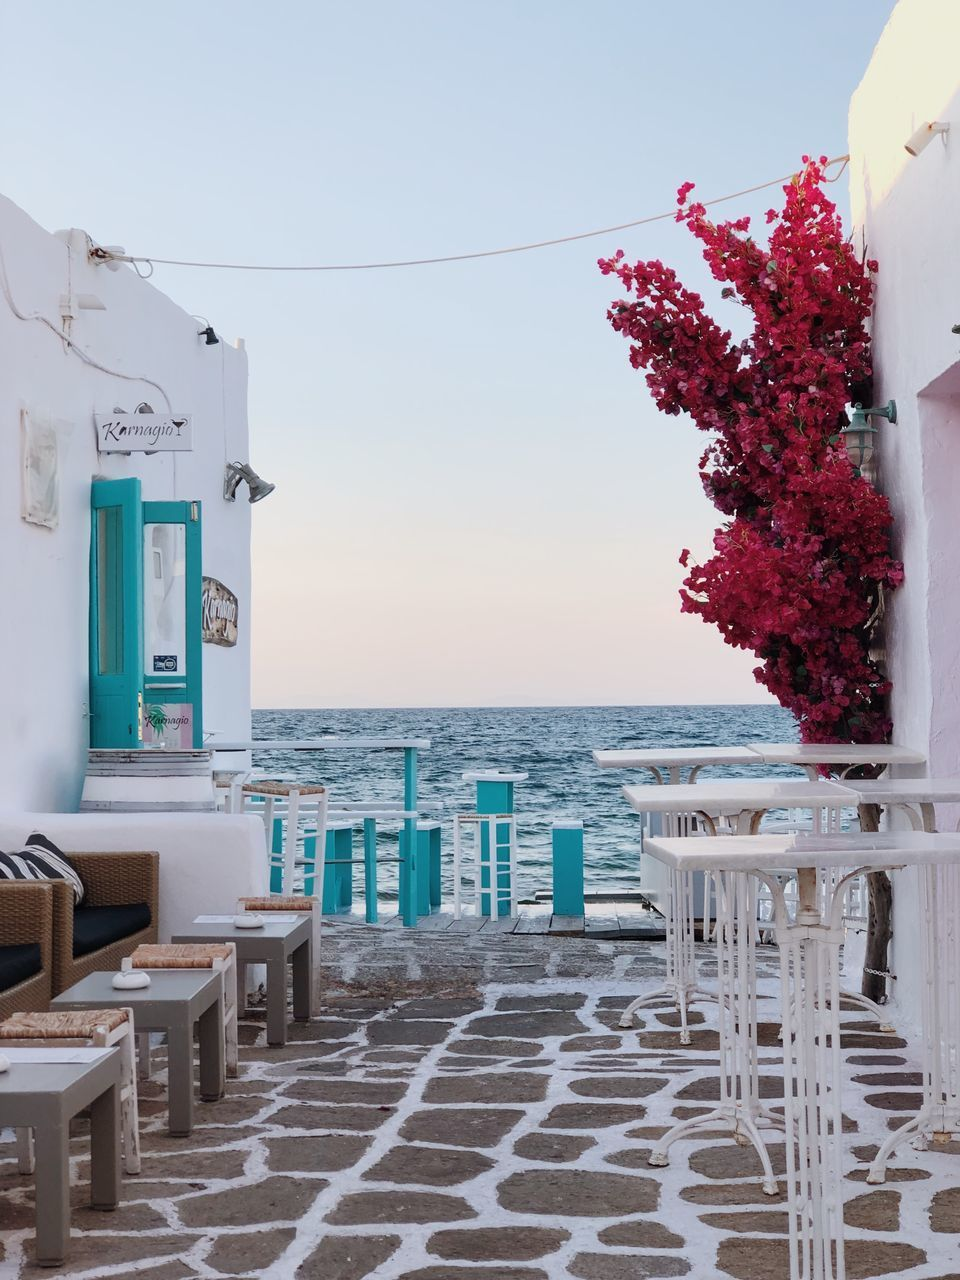 CHAIRS AND TABLE BY SEA AGAINST BUILDINGS